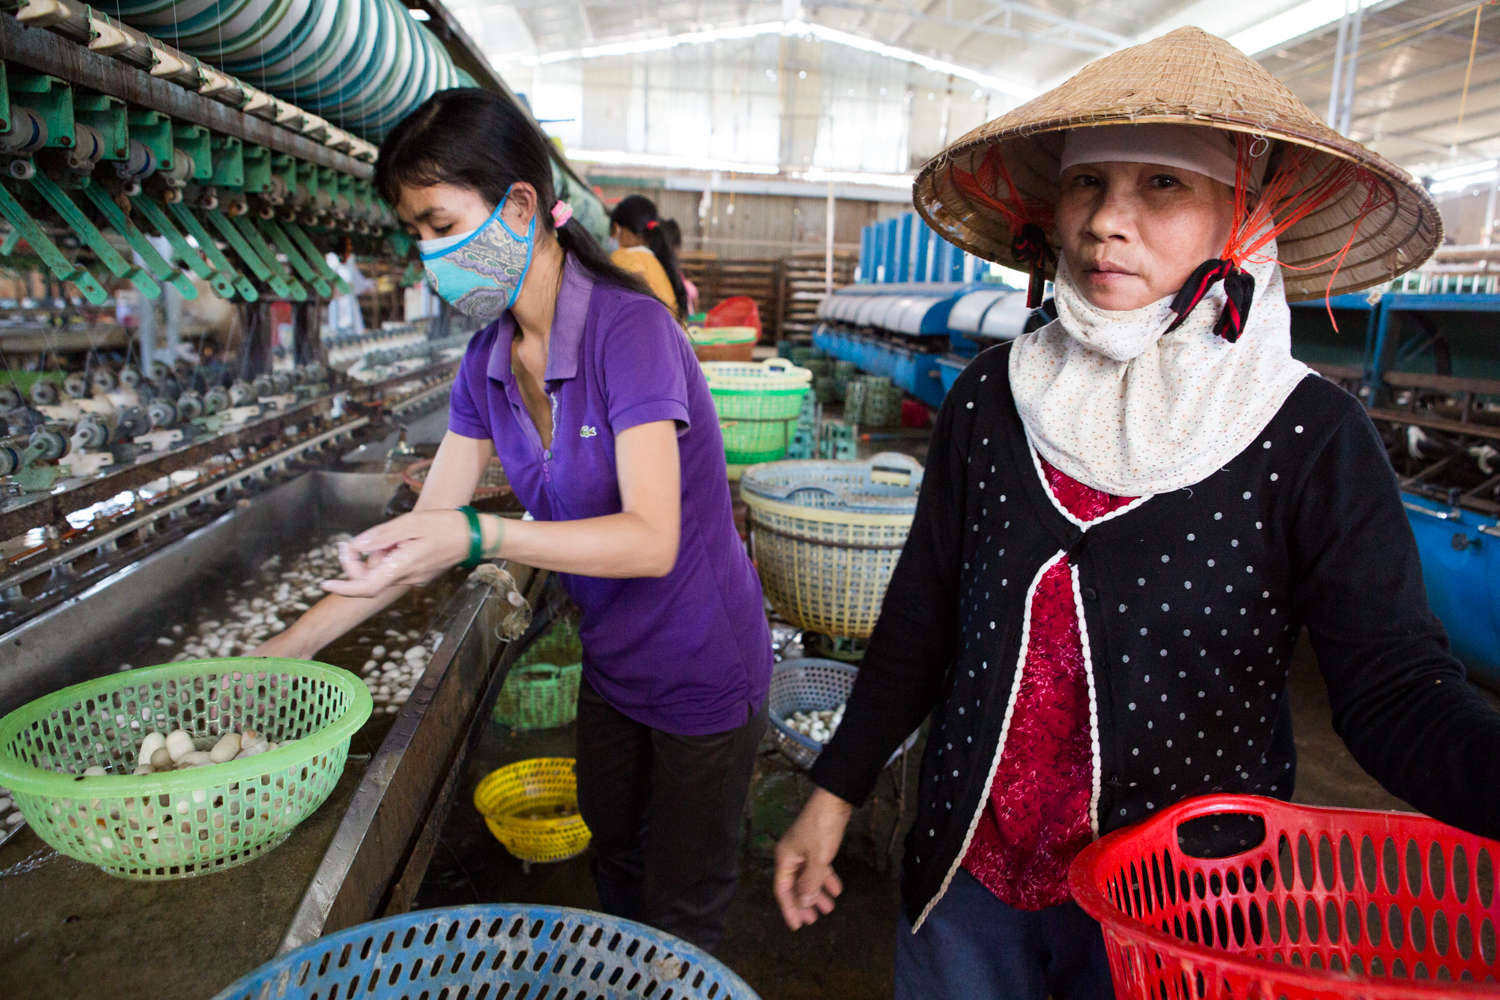 A woman pauses during her task of distributing silk worm cocoons at the Cung Hoan silk manufacturing facility outside Nam Ban, Vietnam.